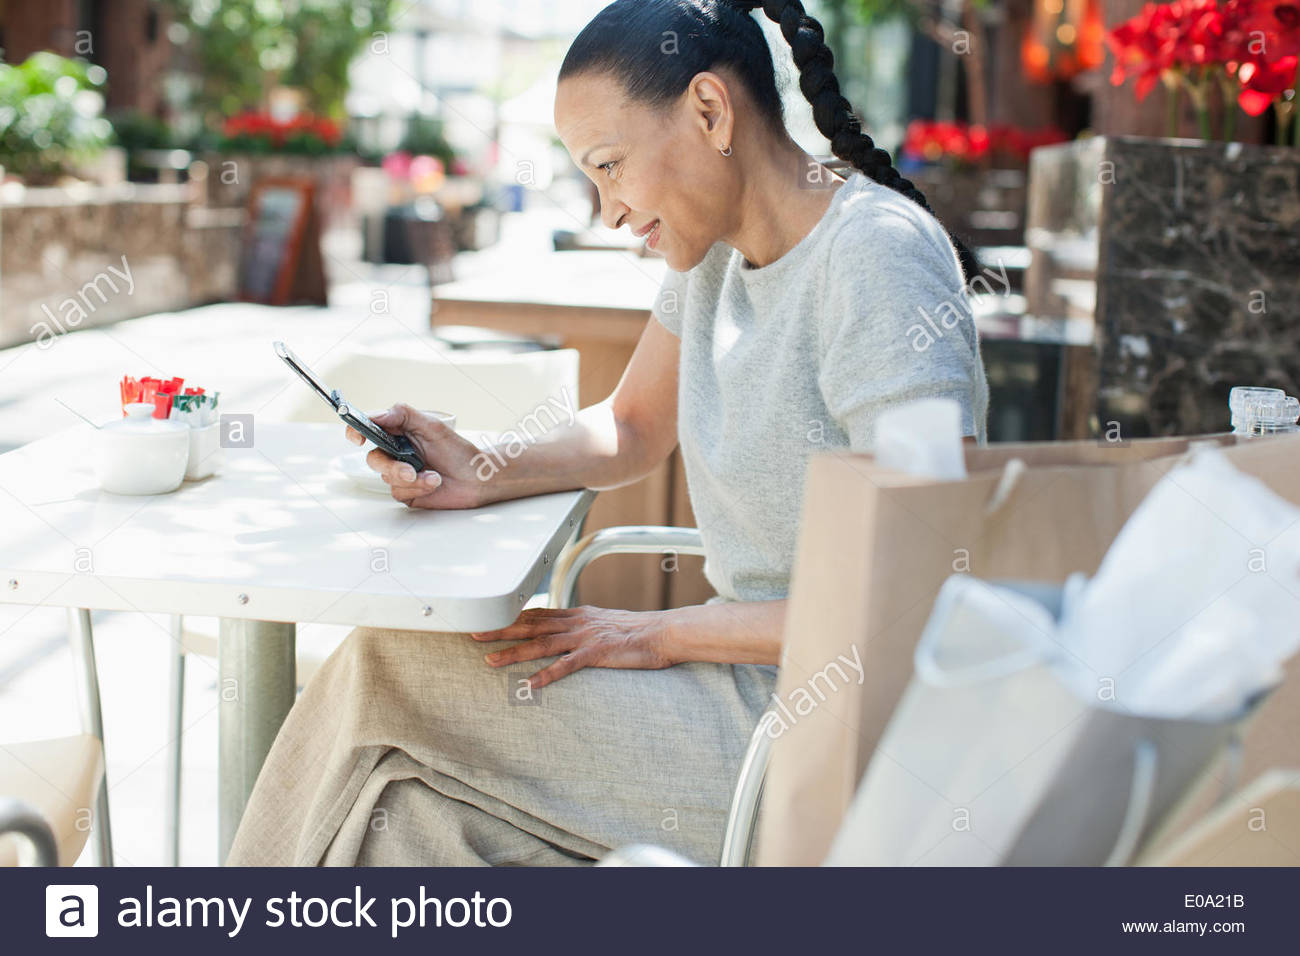 Woman text messaging at cafe - Stock Image